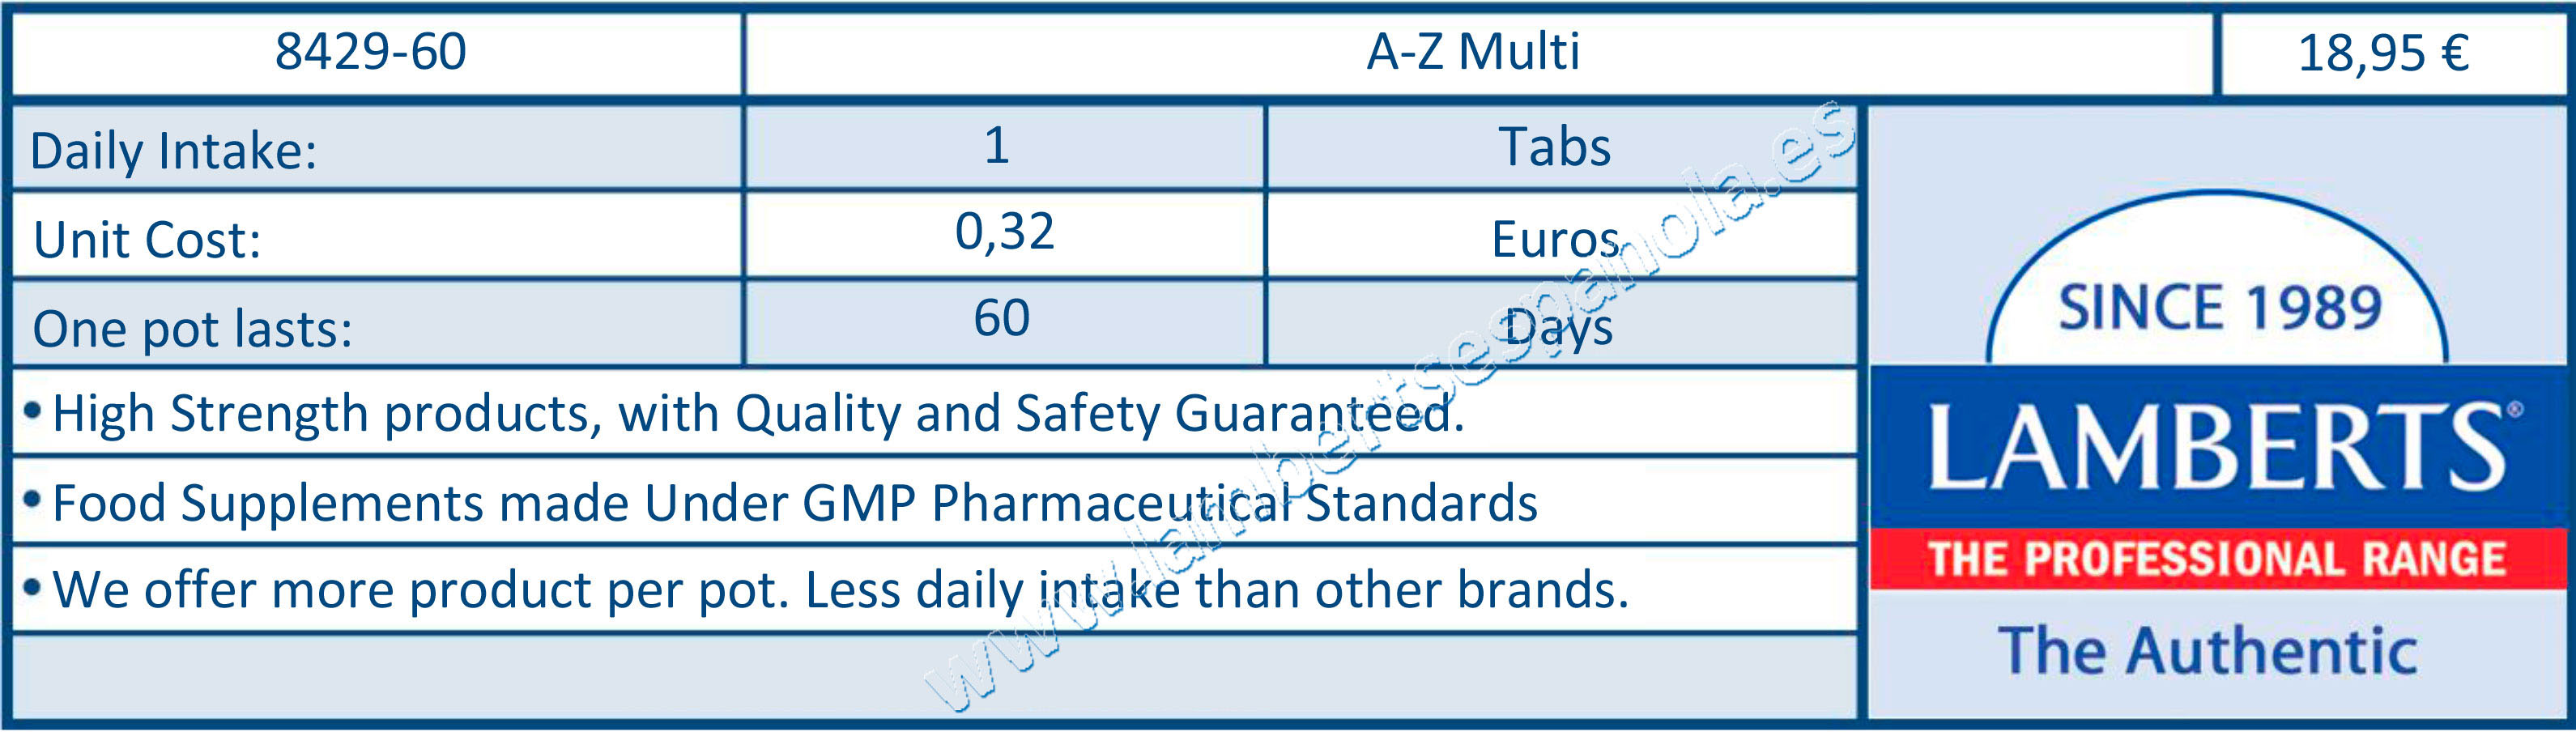 8429-60-usage-and-administration-A-Z-Multi-Multiple-Formulas-Lamberts